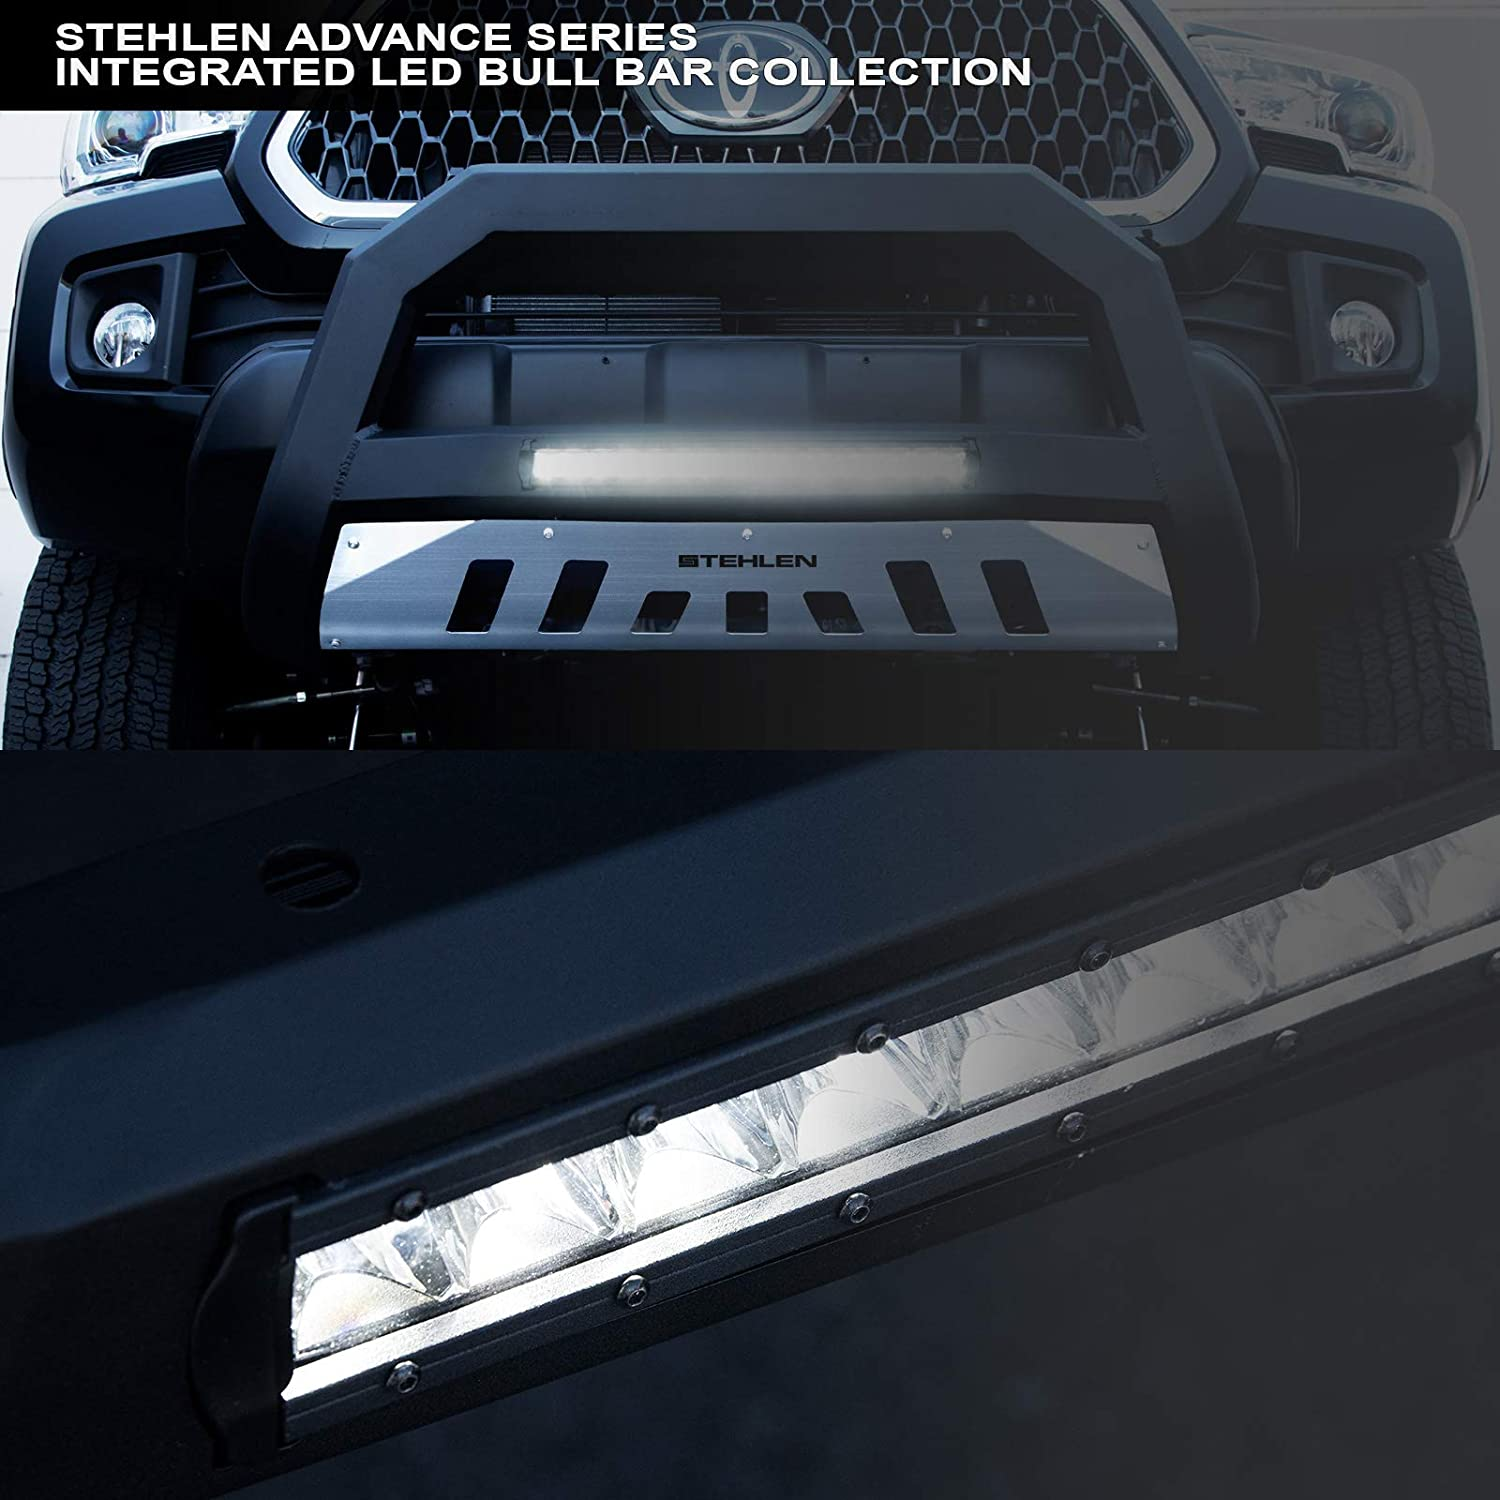 2006-2008 Mark LT 2003-2017 Expedition 2003-2014 Lincoln Navigator Stehlen 714937184565 3 Classic Series Bull Bar Matte Black with 36W CREE LED Light Bars For 2004-2020 Ford F150